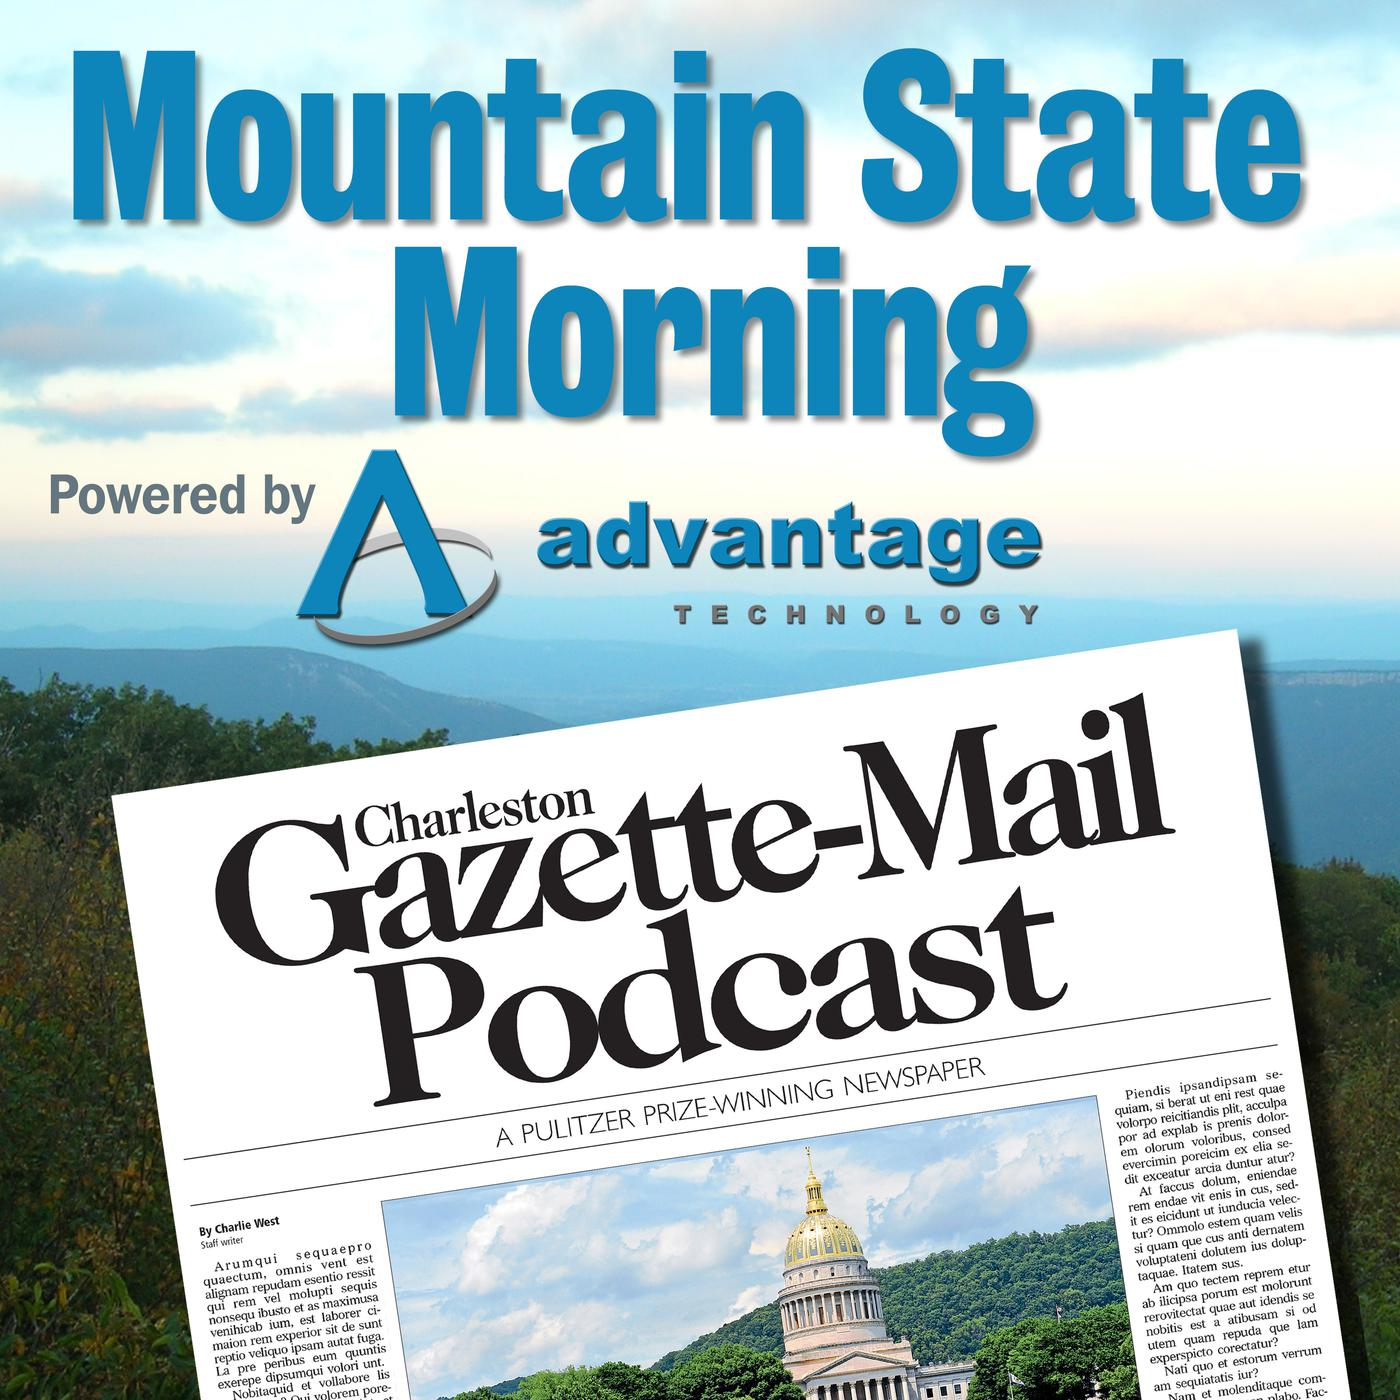 Mountain State Morning (podcast)